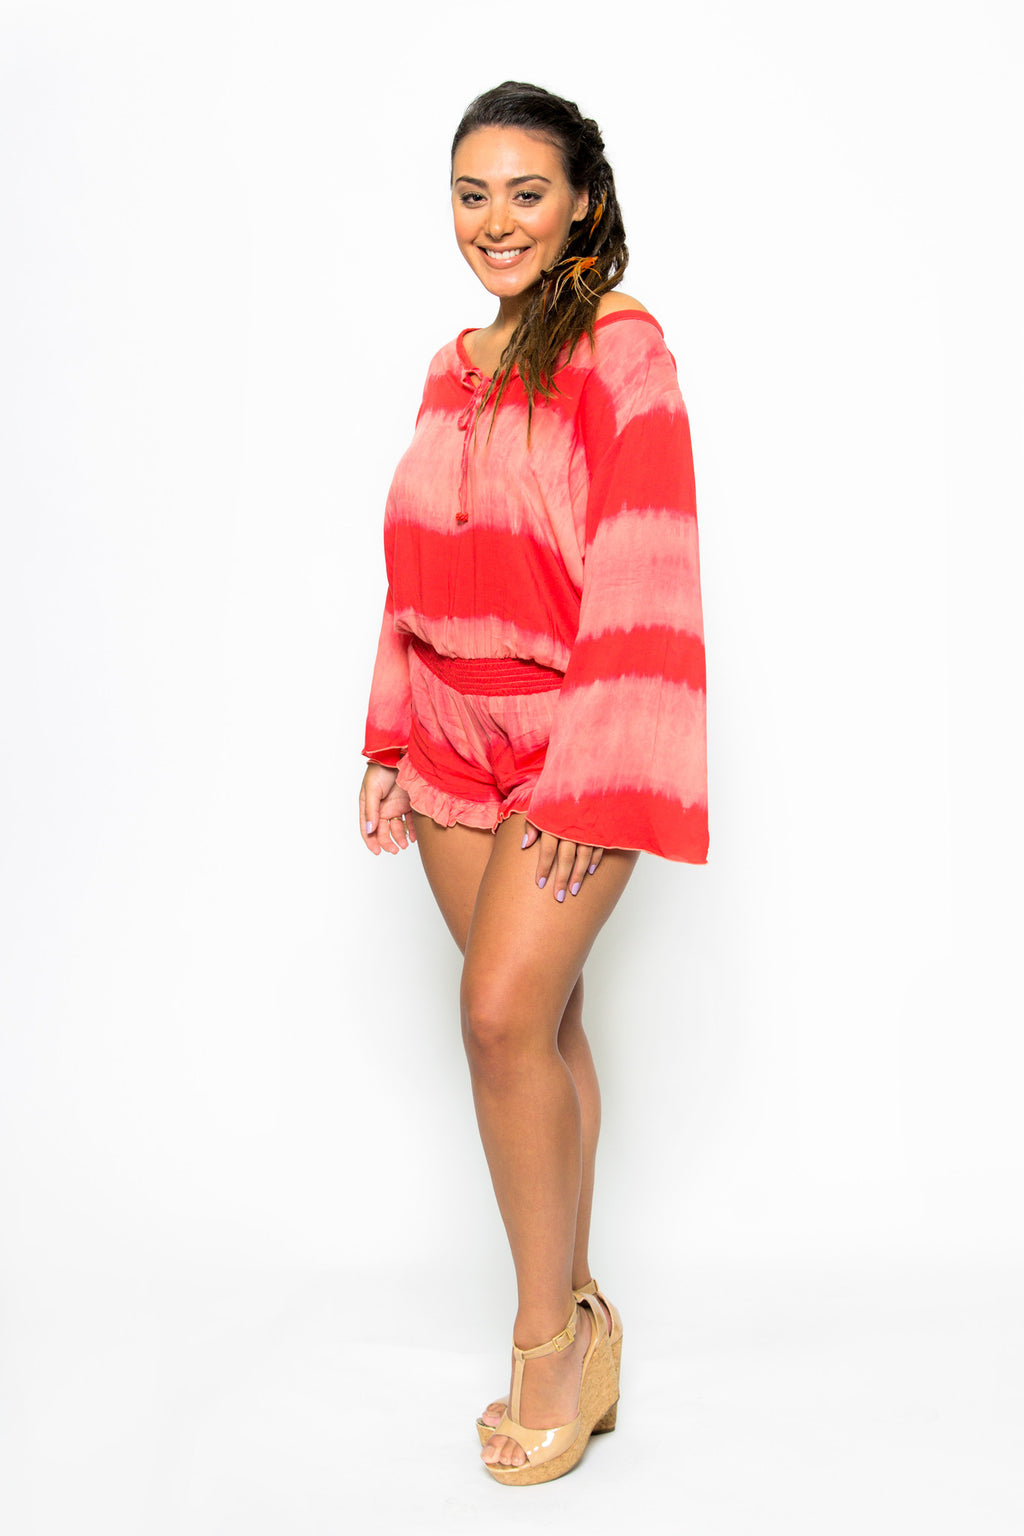 Khush Clothing Balihai Romper in Coral - Boho Bum Island